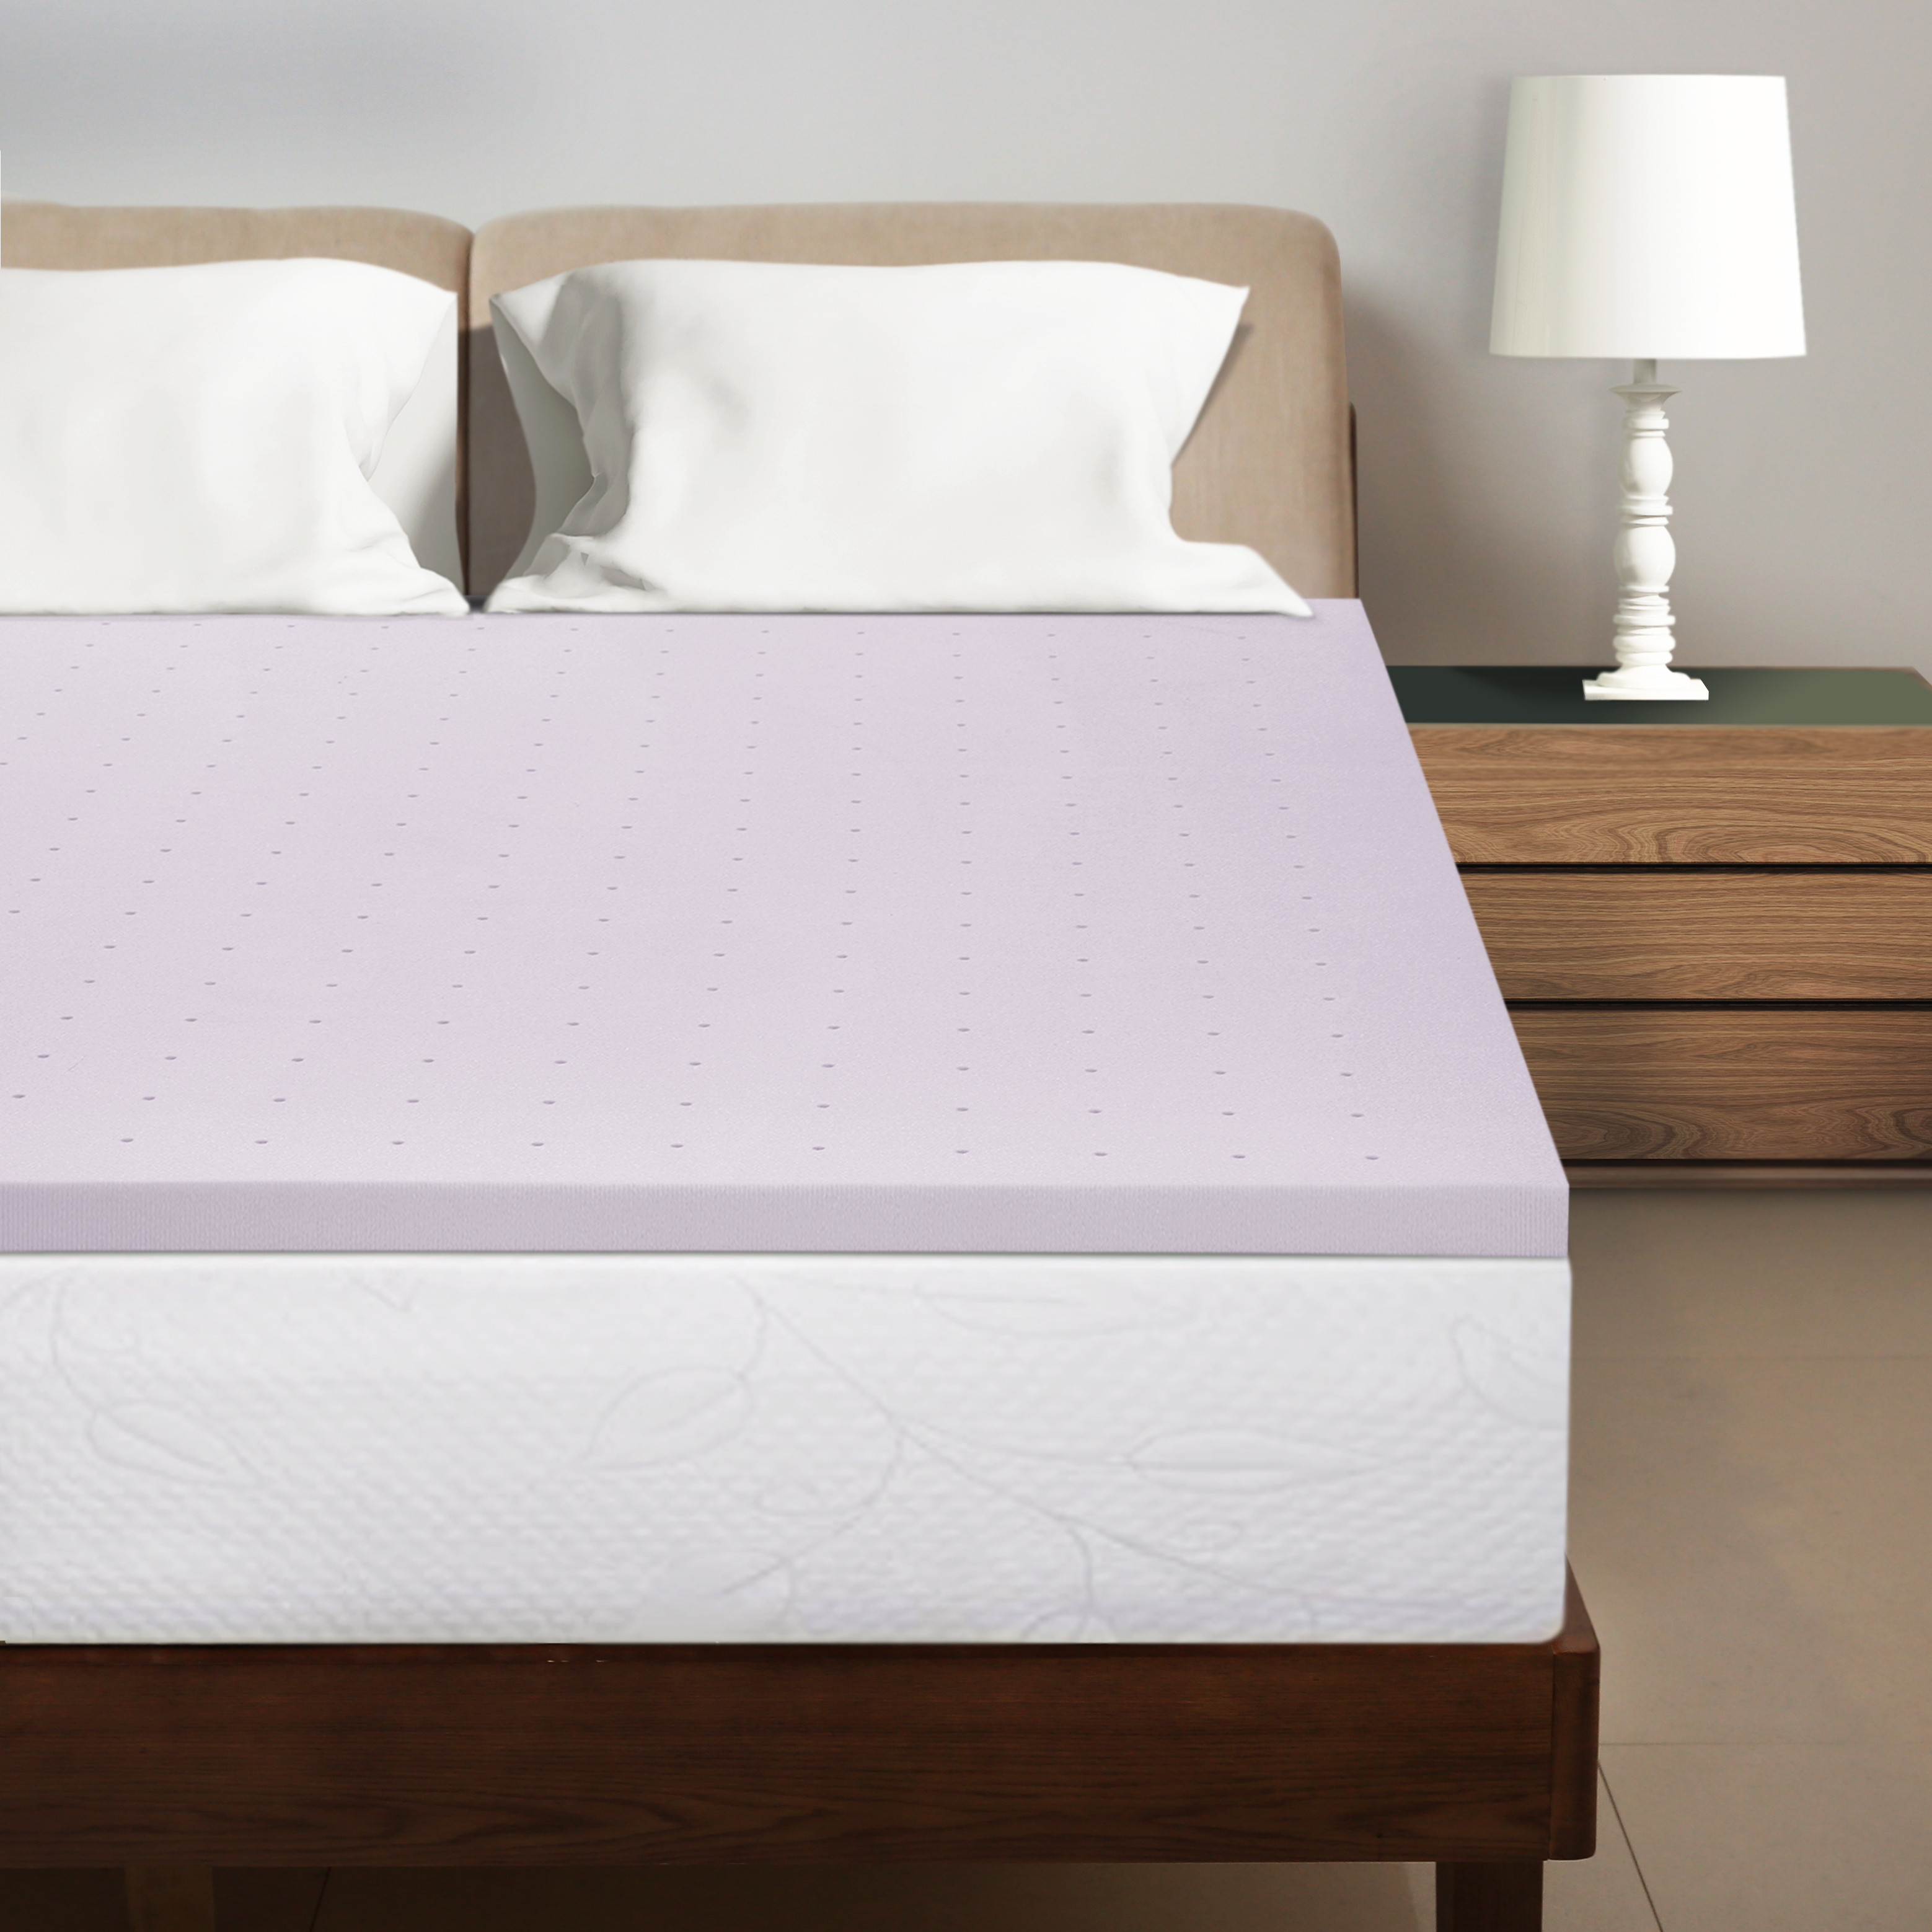 Best Price Mattress 1.5 Inch Lavender Infused Memory Foam Bed Topper Cooling Mattress Pad